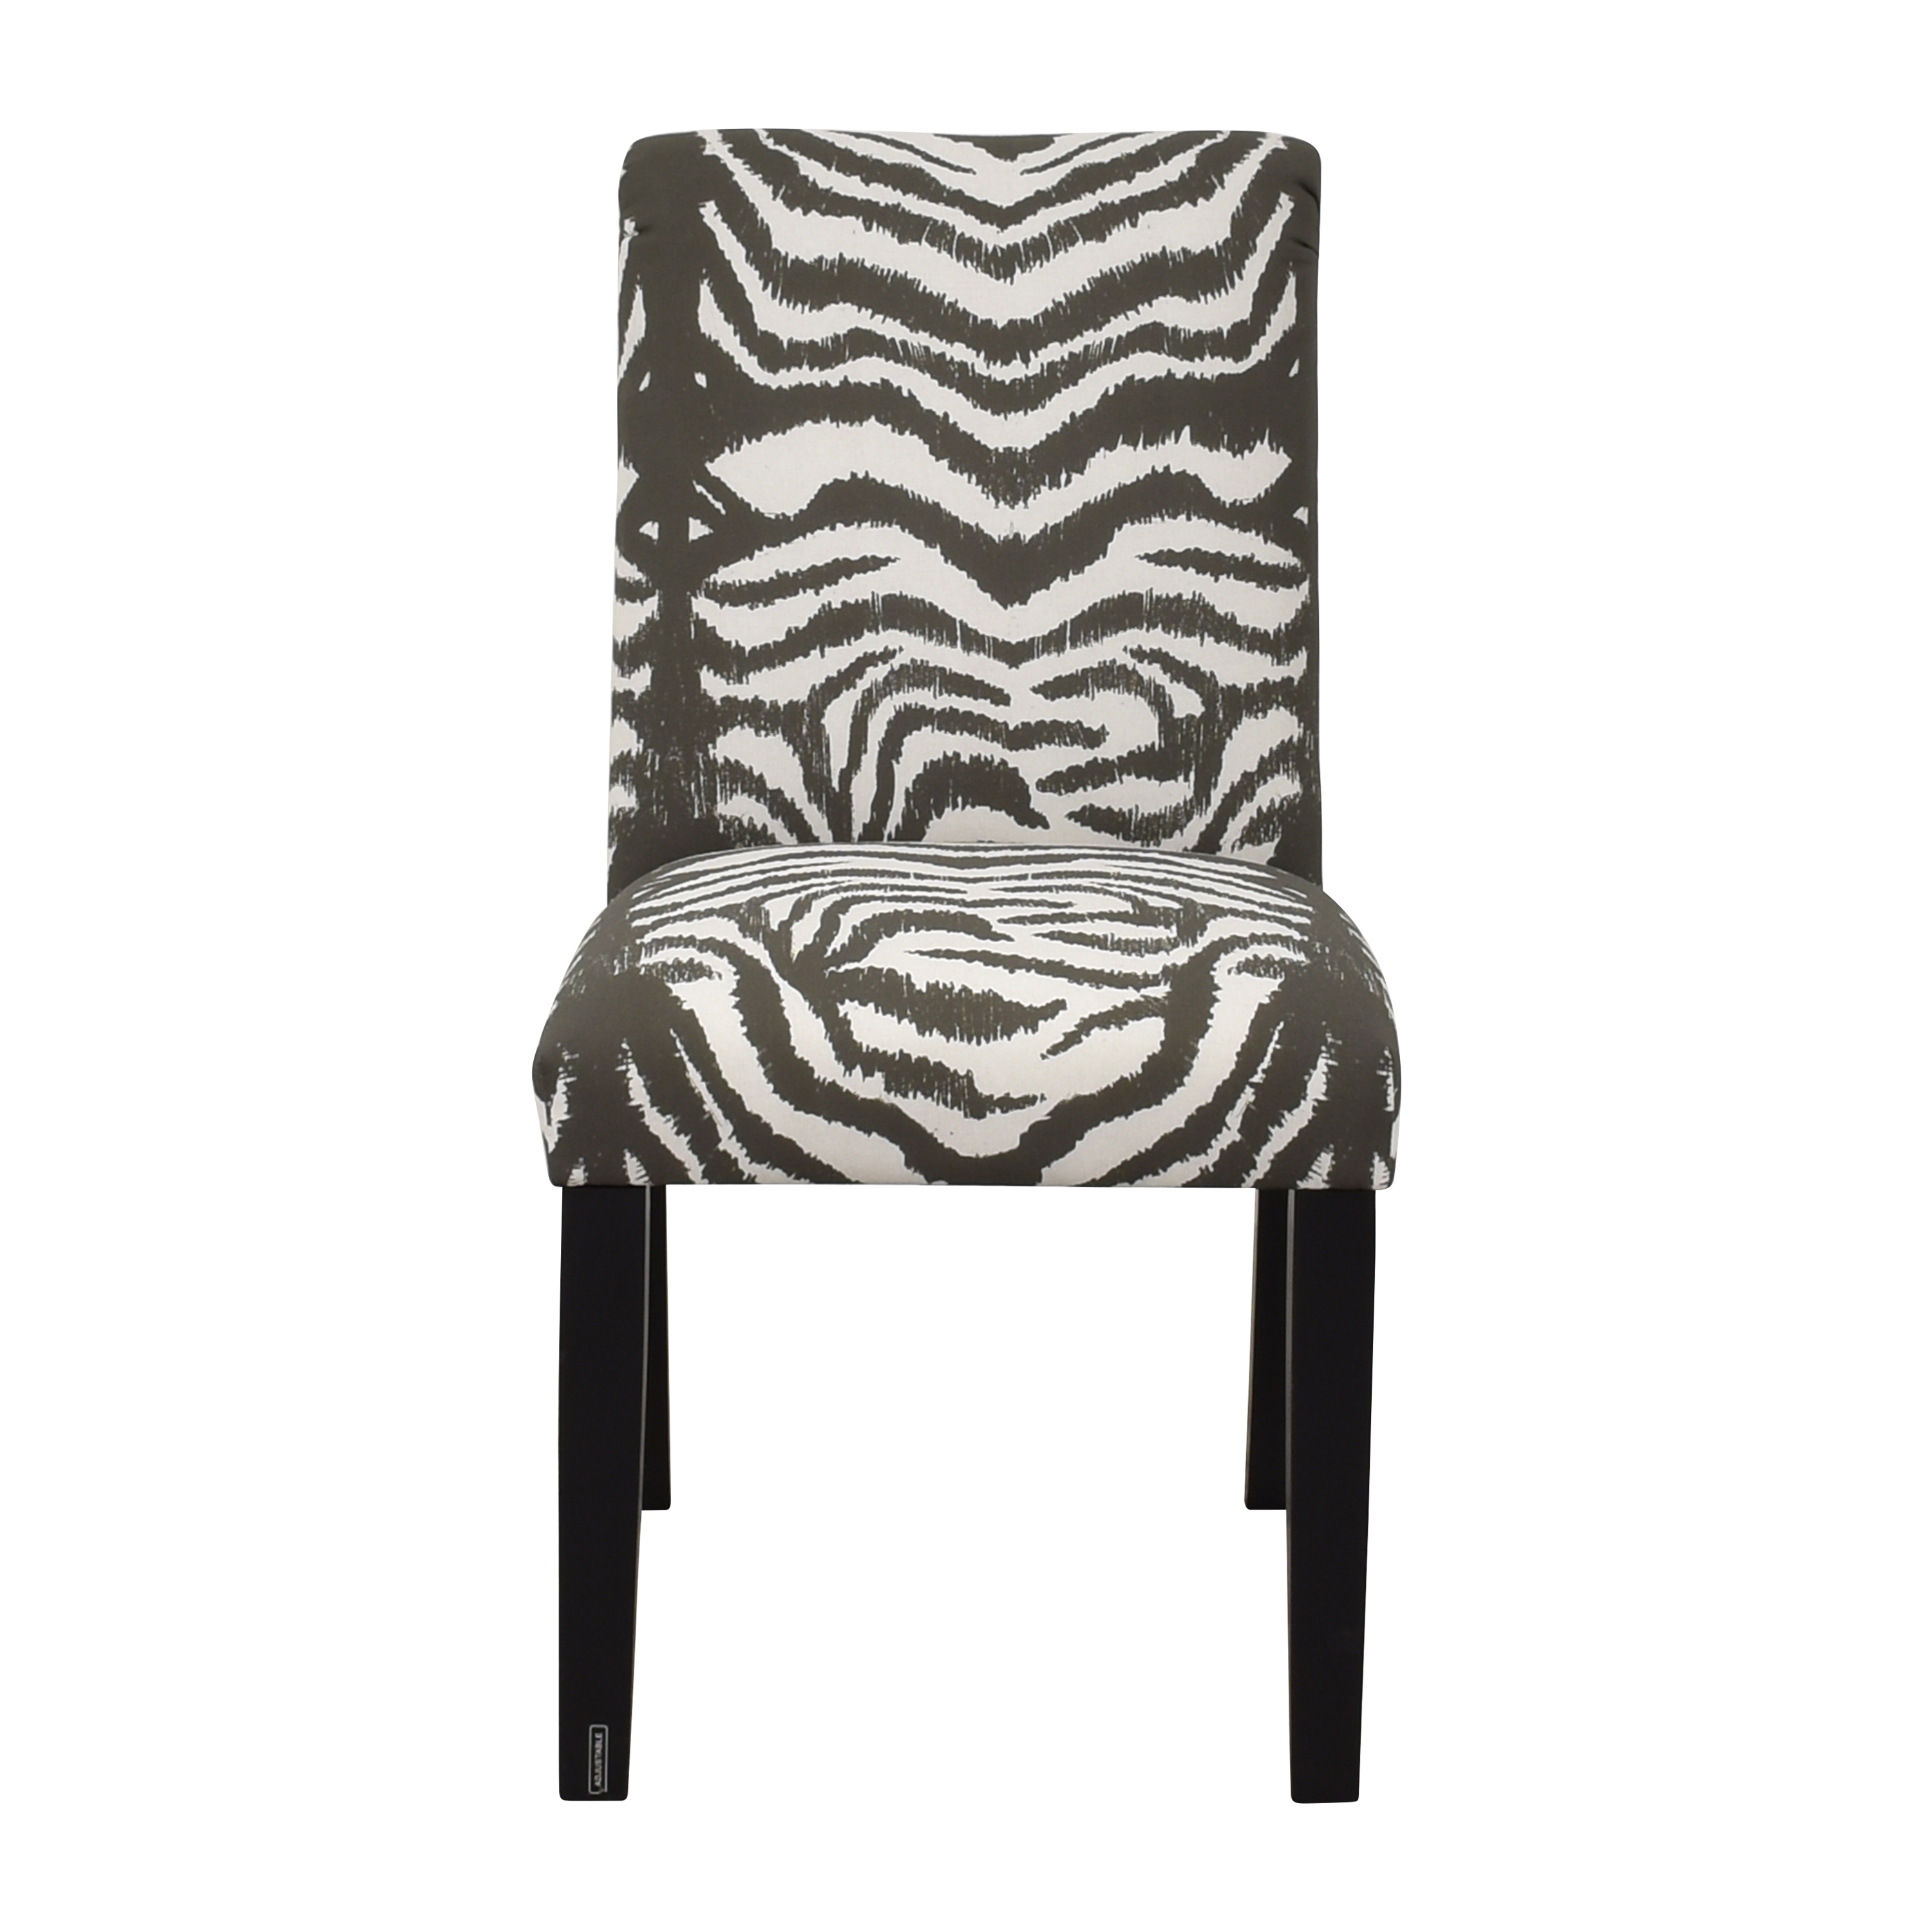 The Inside The Inside Zebra Classic Dining Chair ma